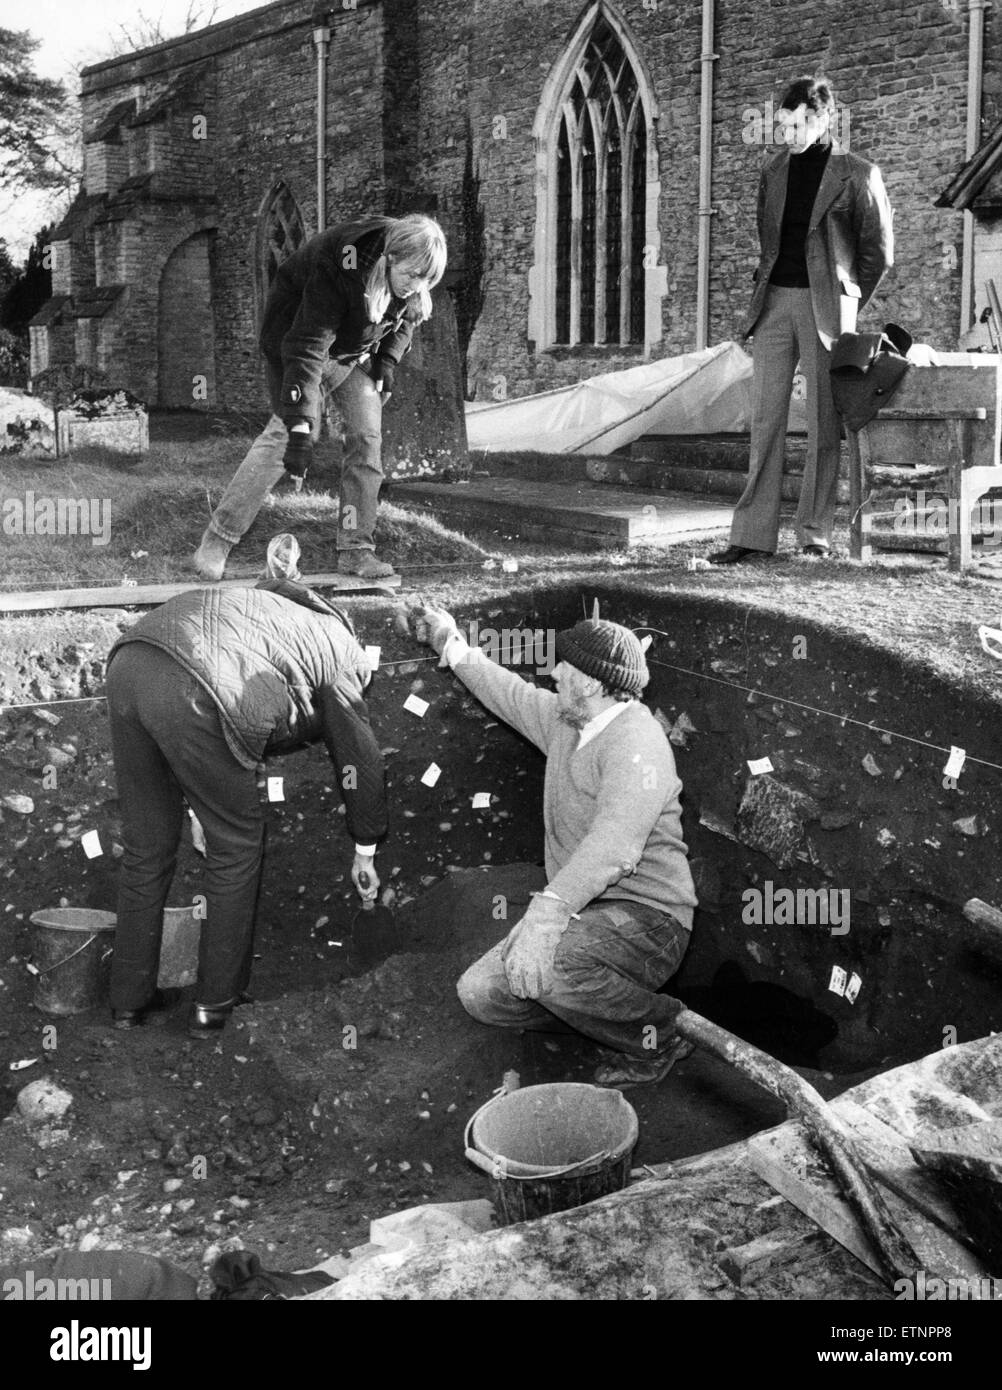 Archaeological dig at St Peter's Church, Wooten Wawen. 9th December 1974. - Stock Image